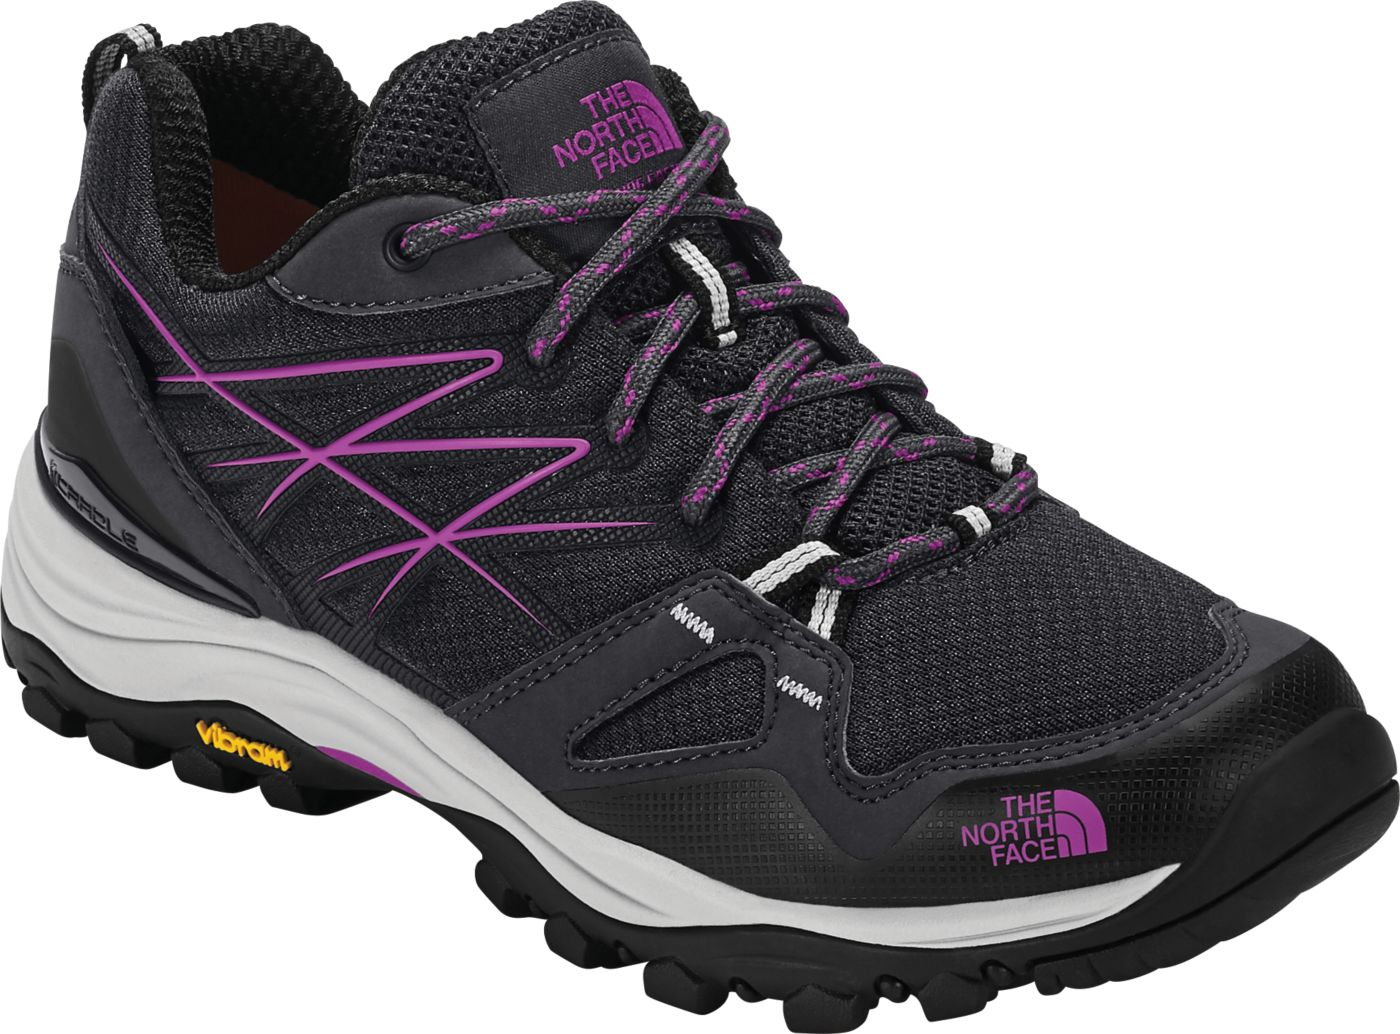 The North Face Women's Hedgehog Fastpack GTX Waterproof Hiking Boots